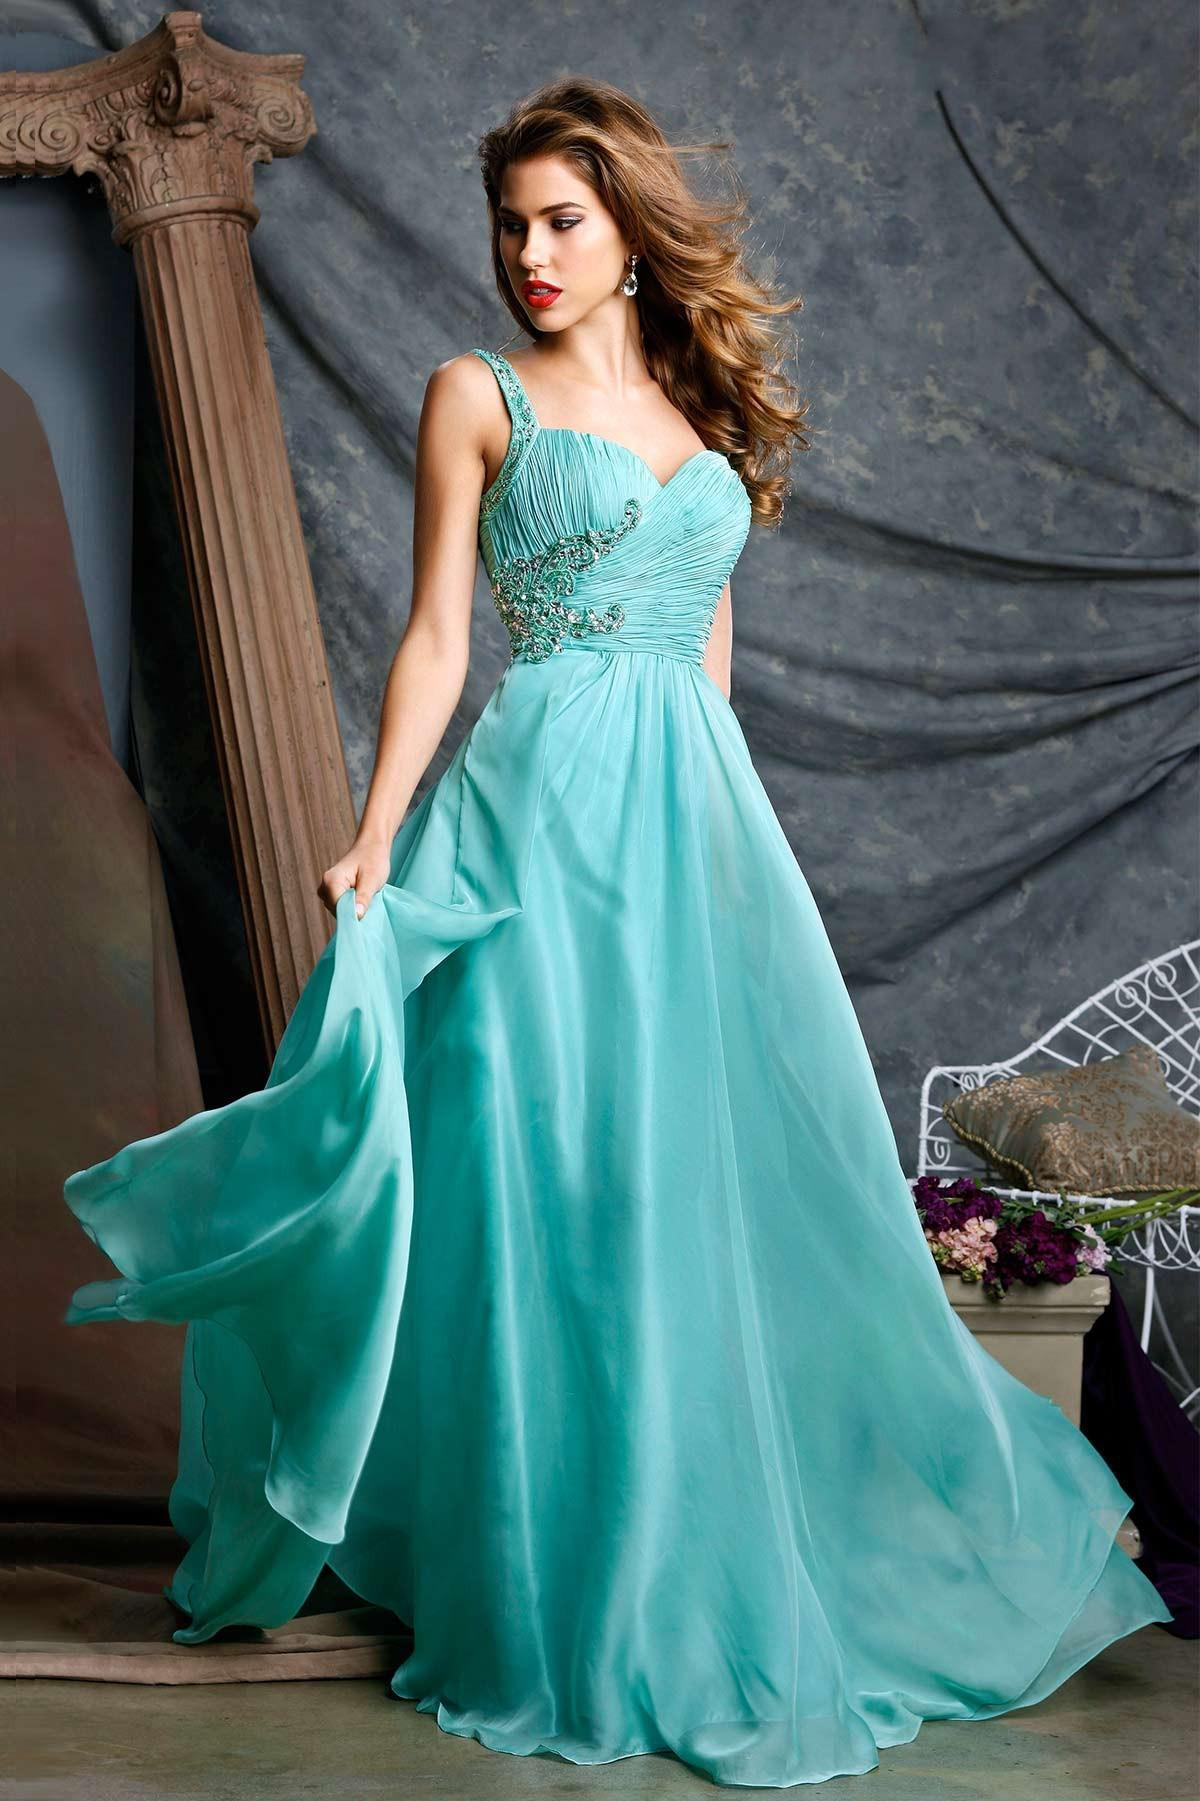 On Sale ! 2014 New Sexy Light Sky Blue Spaghetti Strap Chiffon Prom Dresses Beads Rhinestones Long Length A-line Evening Gowns